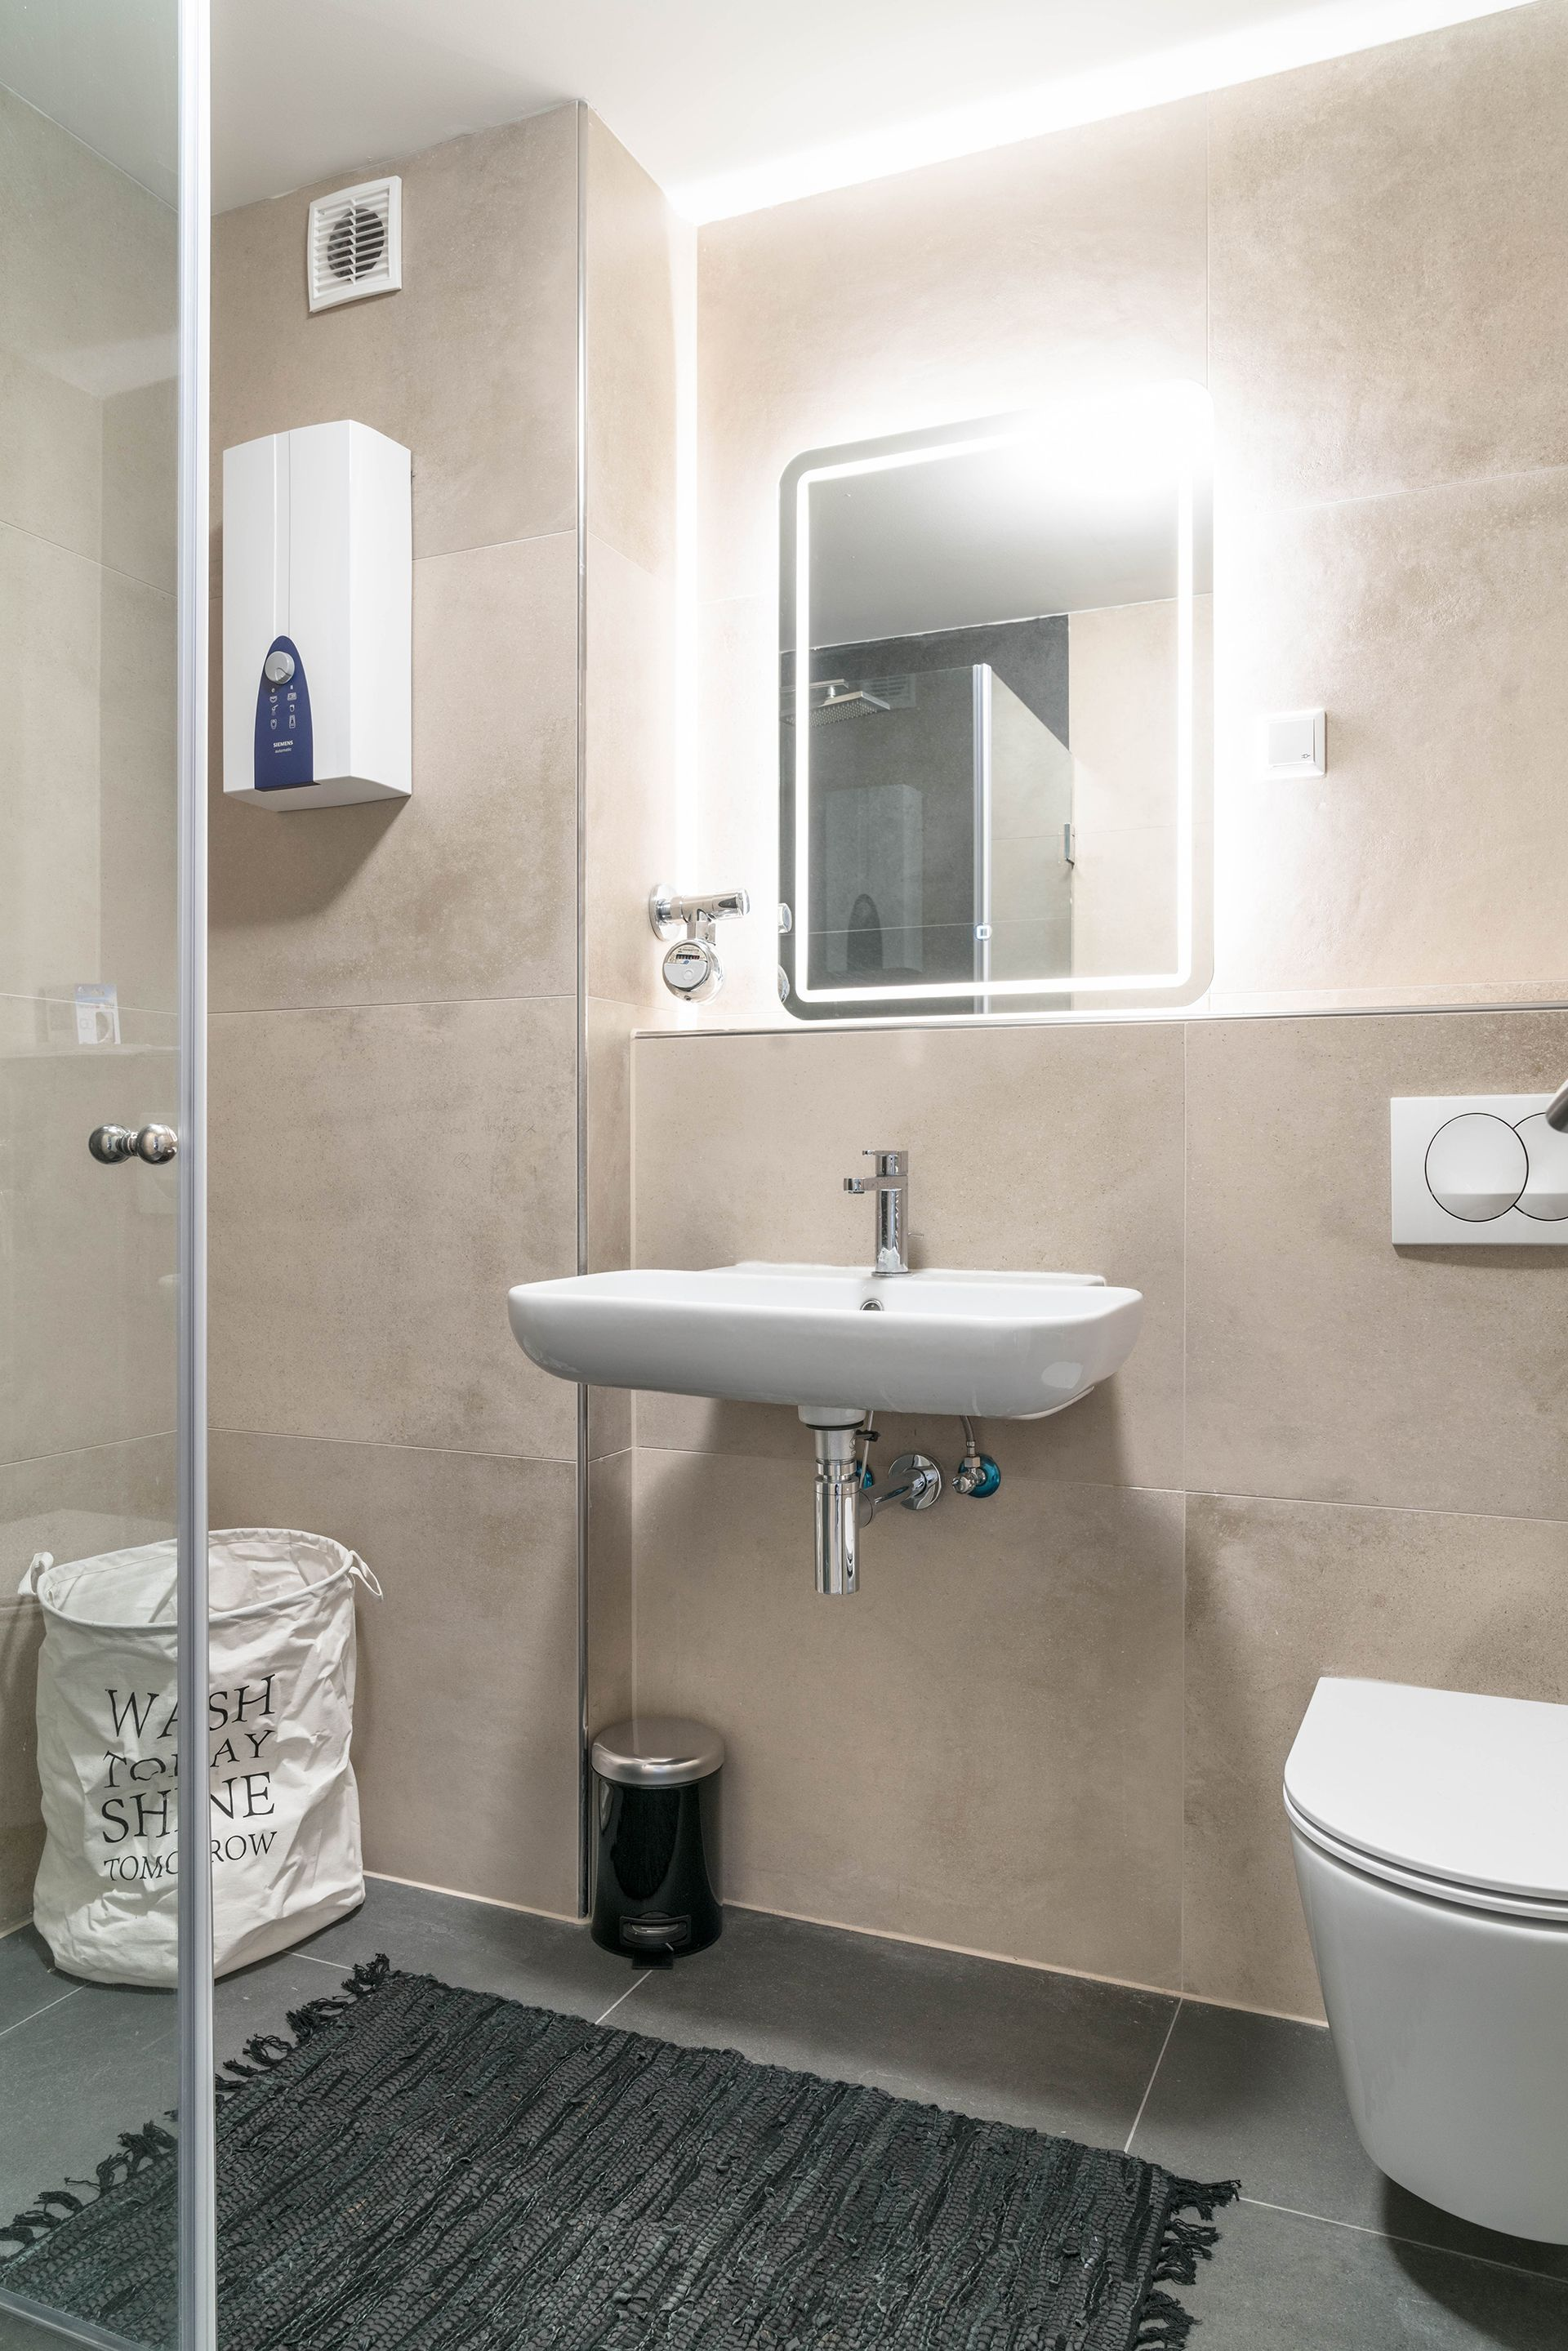 Studio apartment to rent in Berlin BILE-B104-2038-0